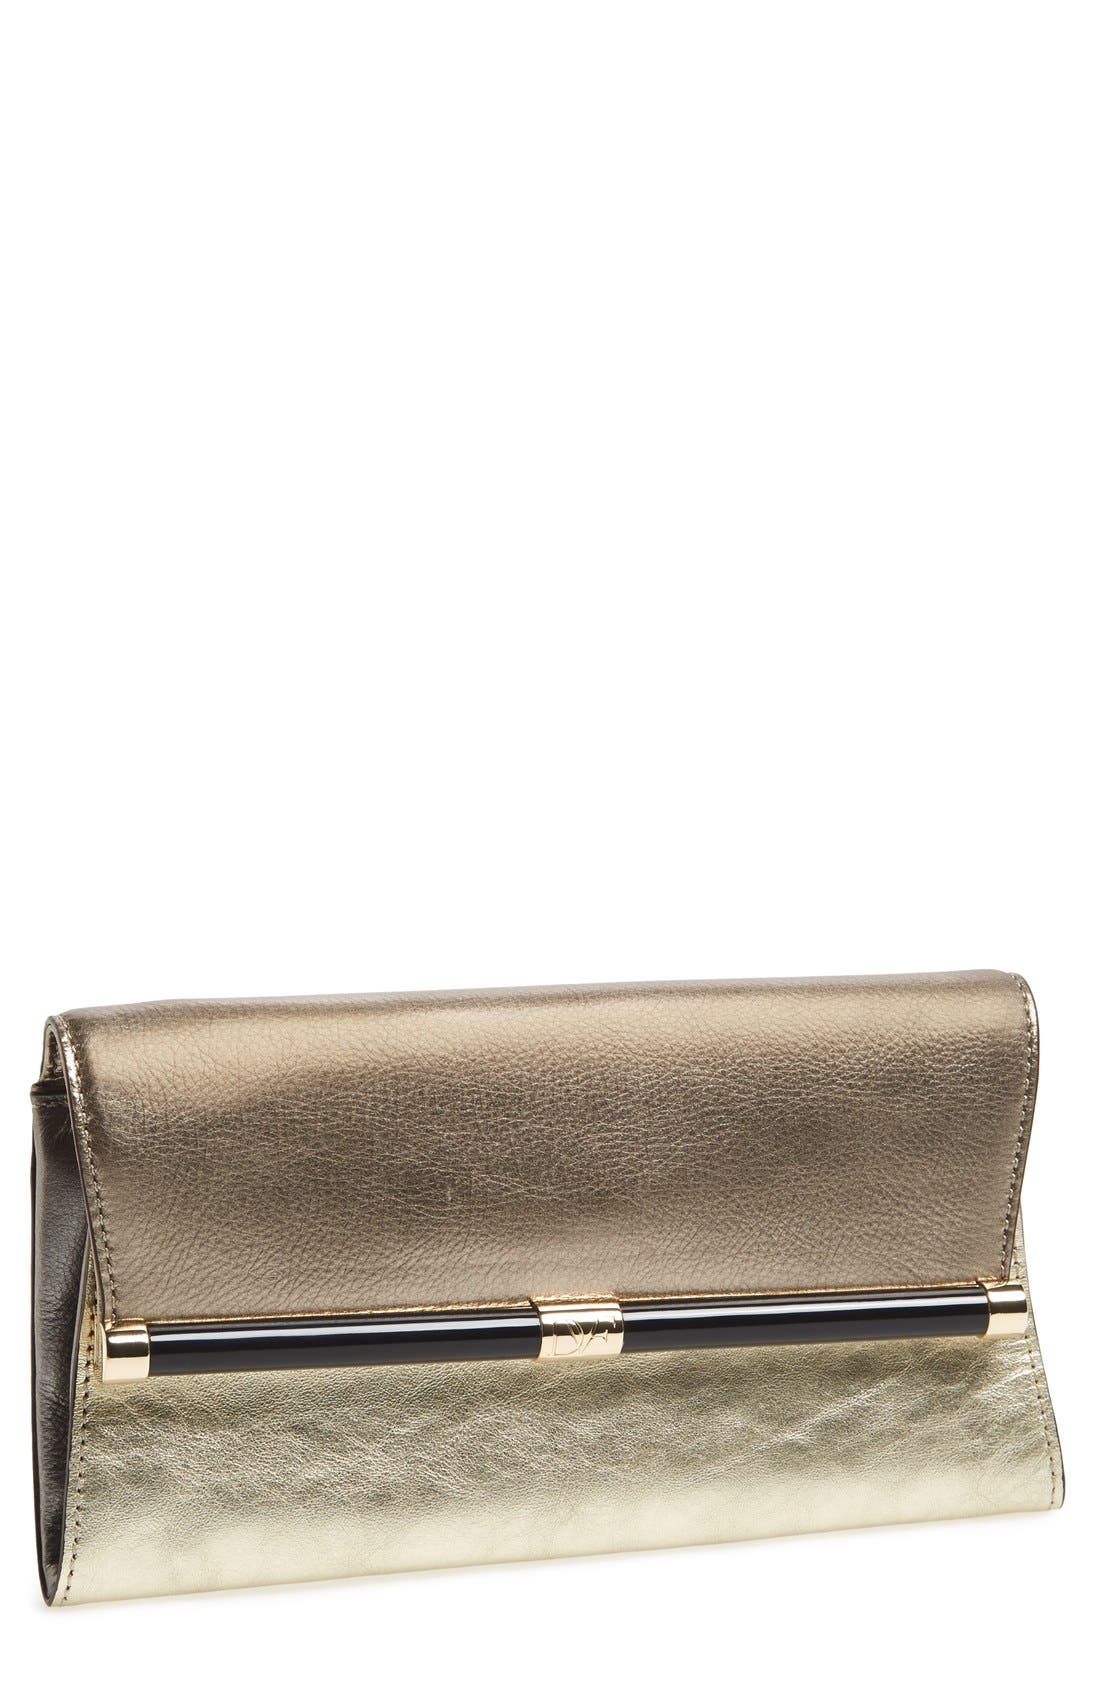 '440 - Mixed Metallic' Envelope Clutch,                         Main,                         color, 710